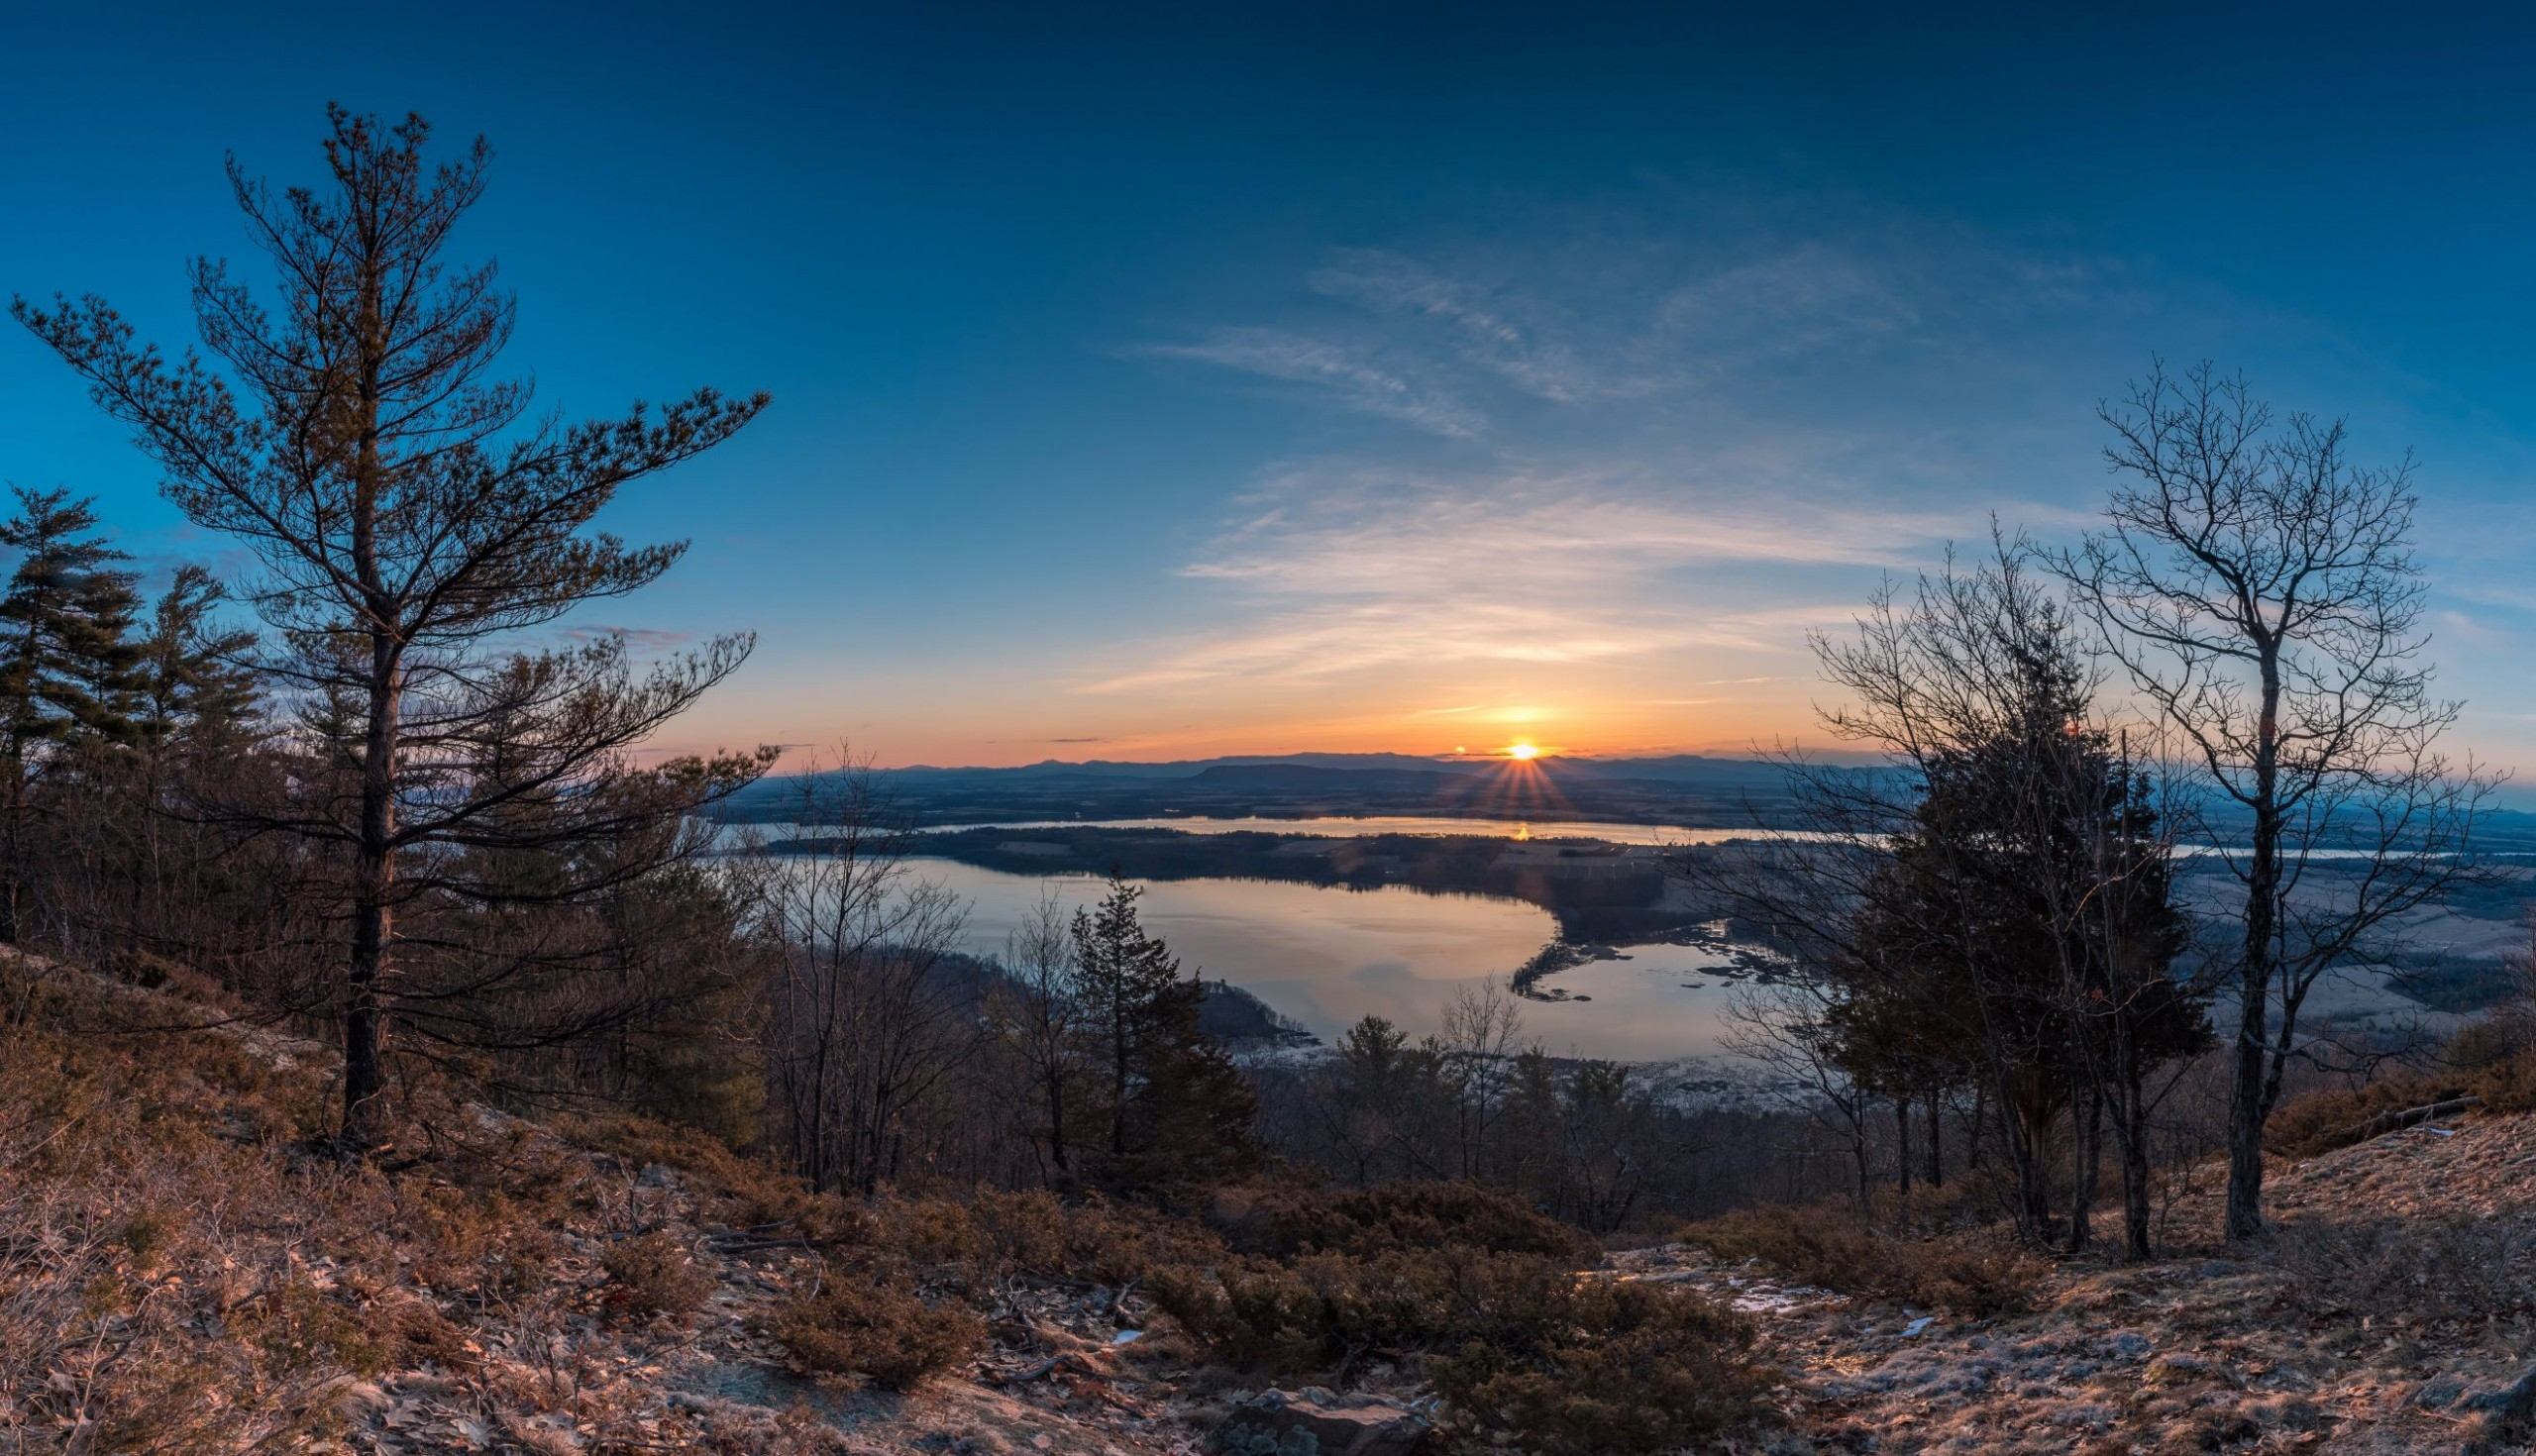 Sunrise from a mountain summit